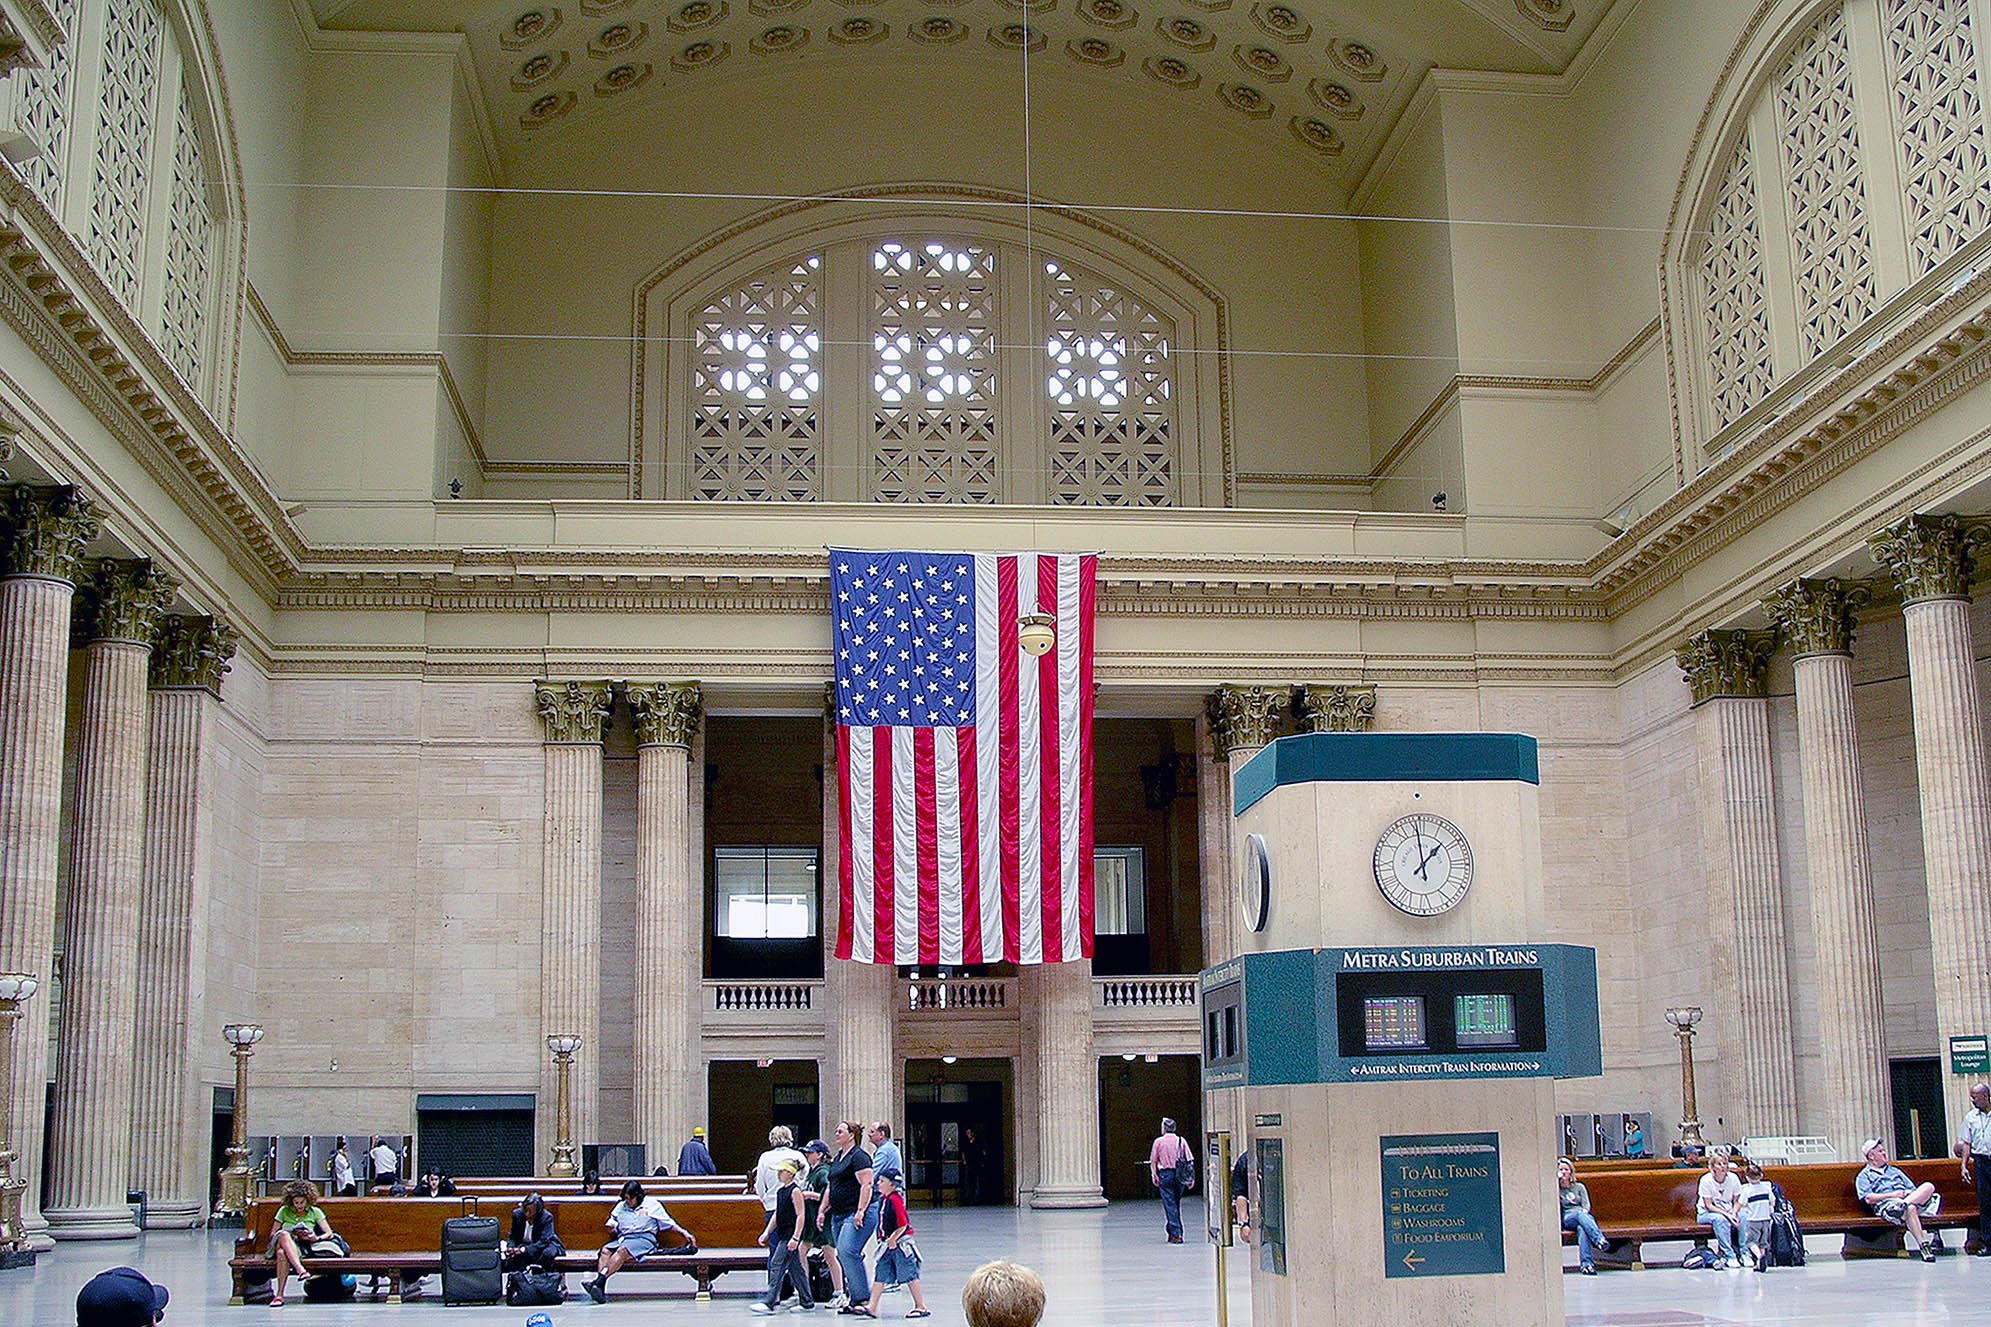 Union Station Chicago Amtrak tågresor